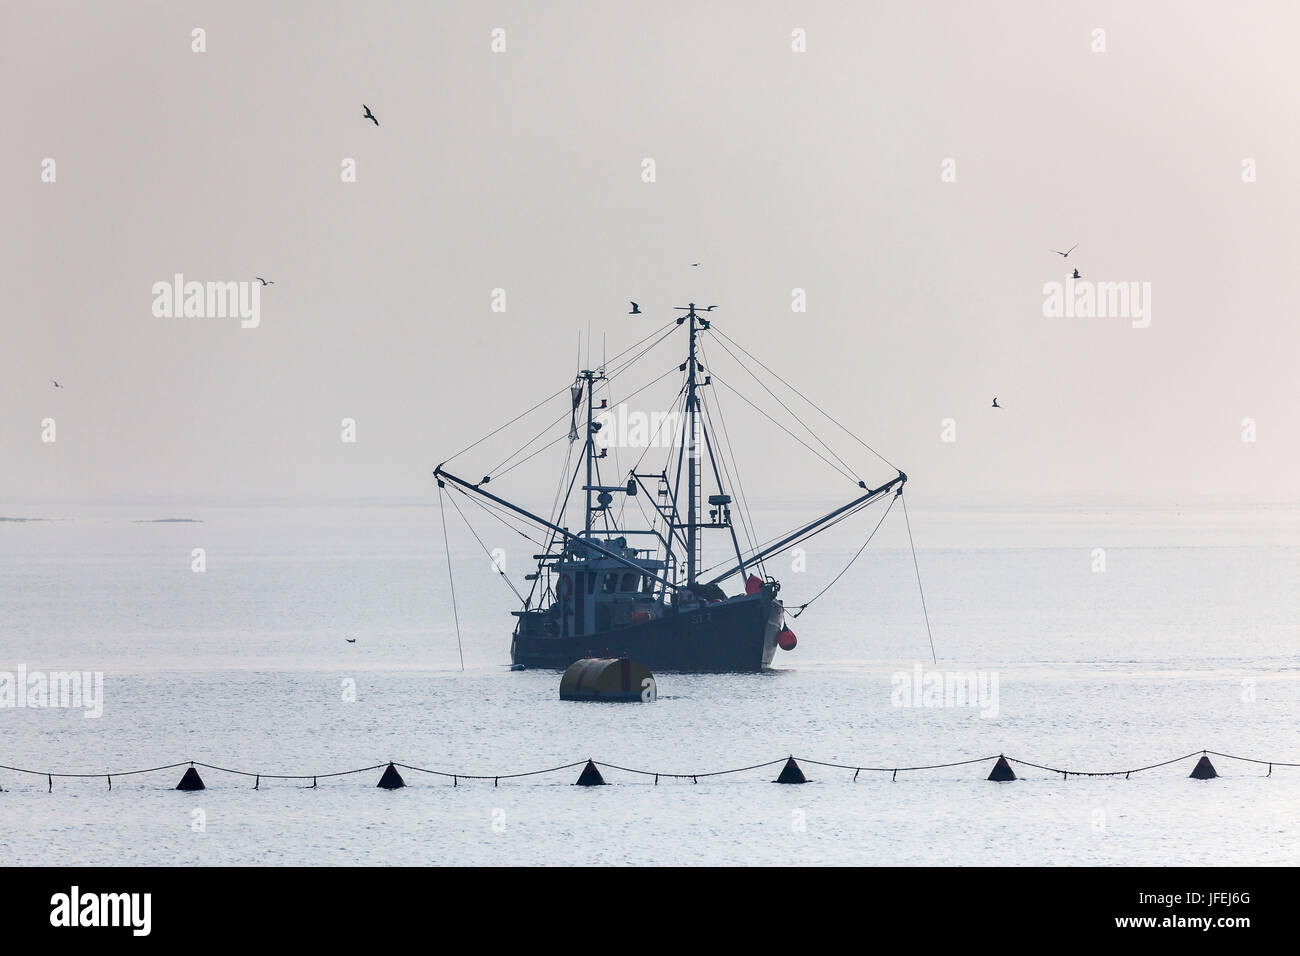 Crab cutters on the North Sea near Büsum, Ditmarsh, Schleswig - Holstein, North Germany, Germany - Stock Image